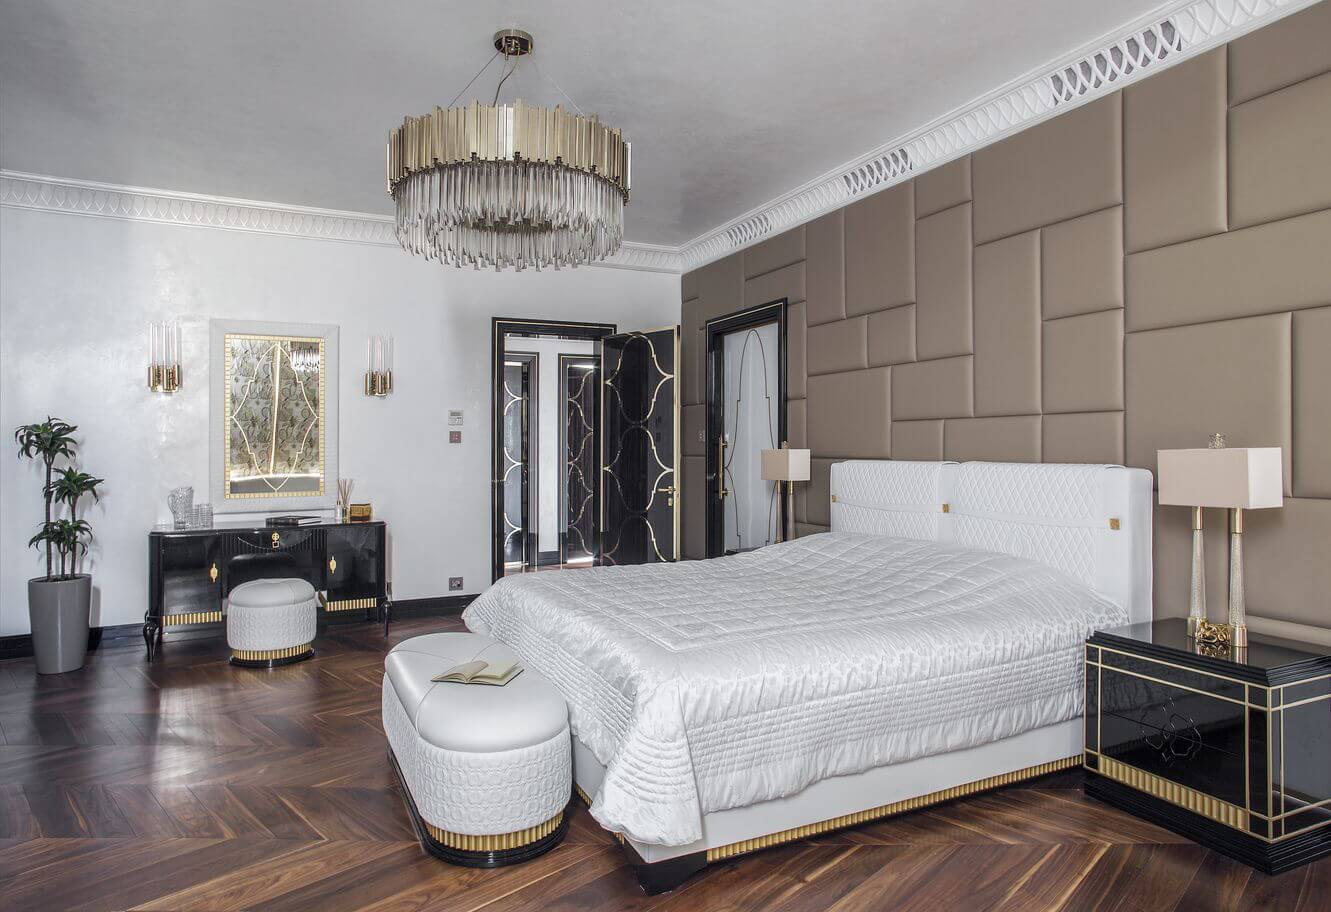 Discover Here What Size Chandelier Is Best For Your Bedroom